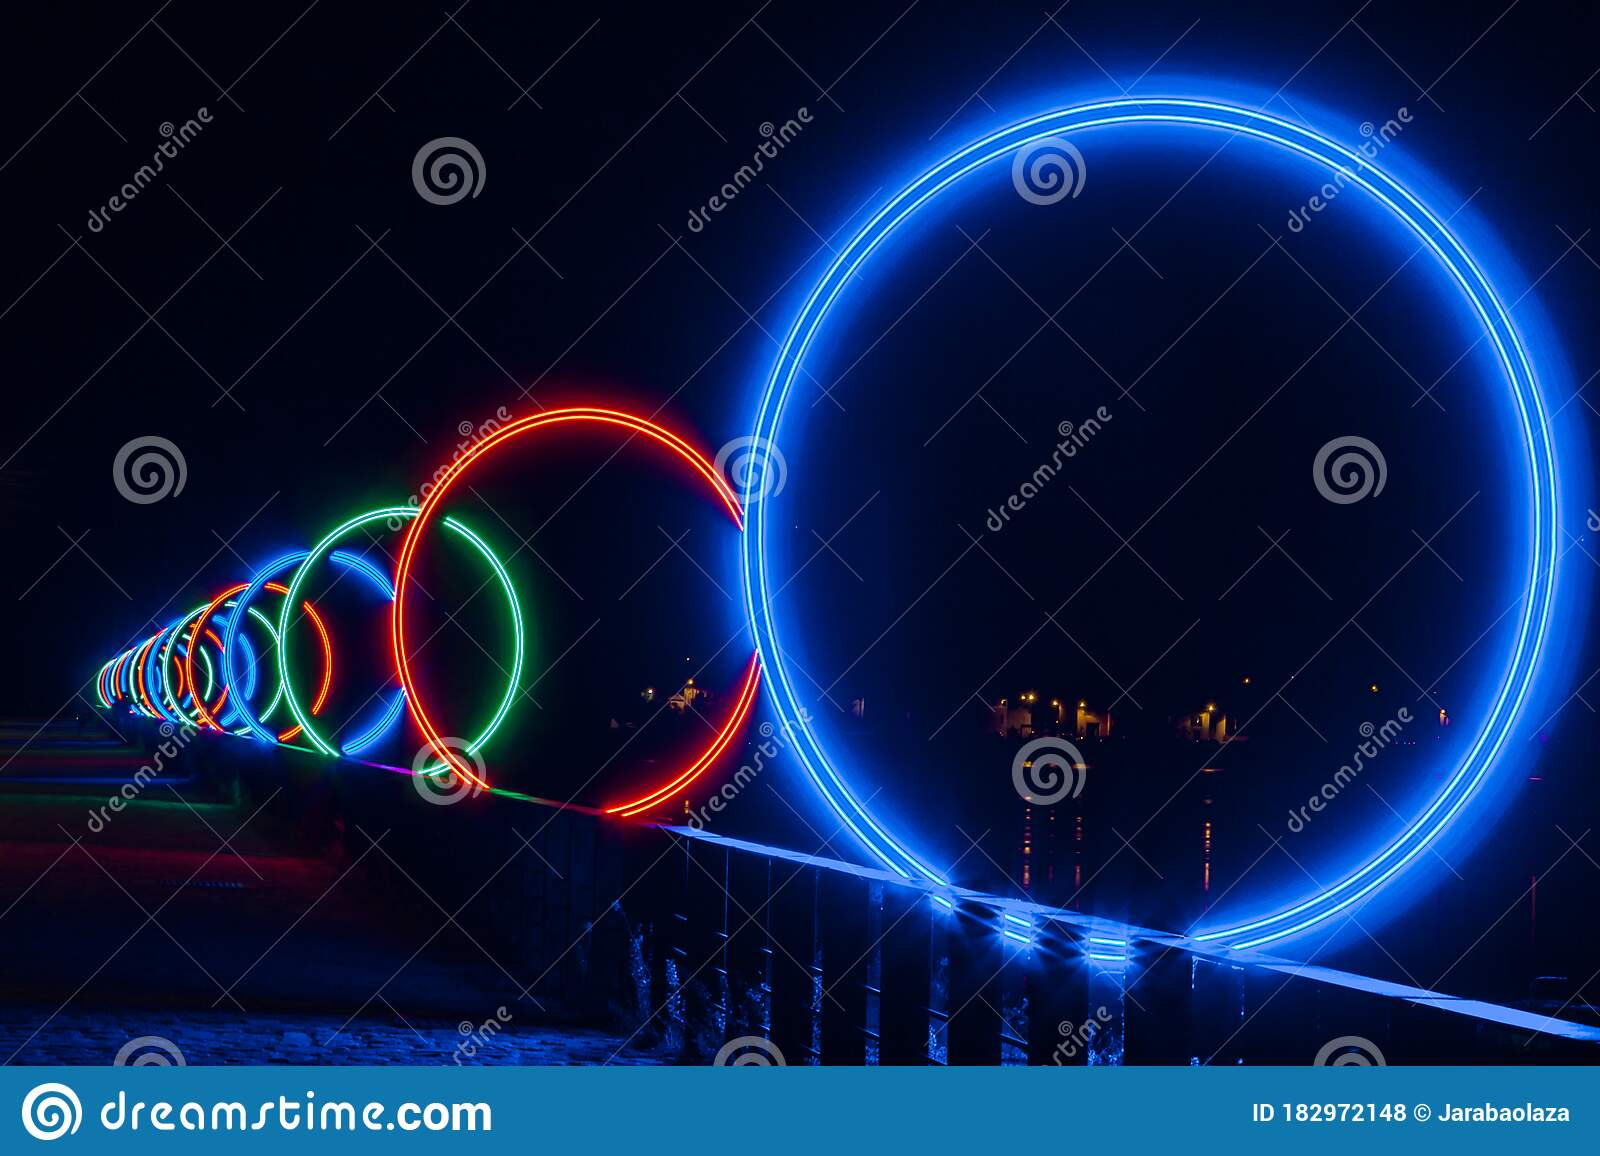 Big Rings In The Islands Of Nantes France Stock Photo Image Of Concept Green 182972148